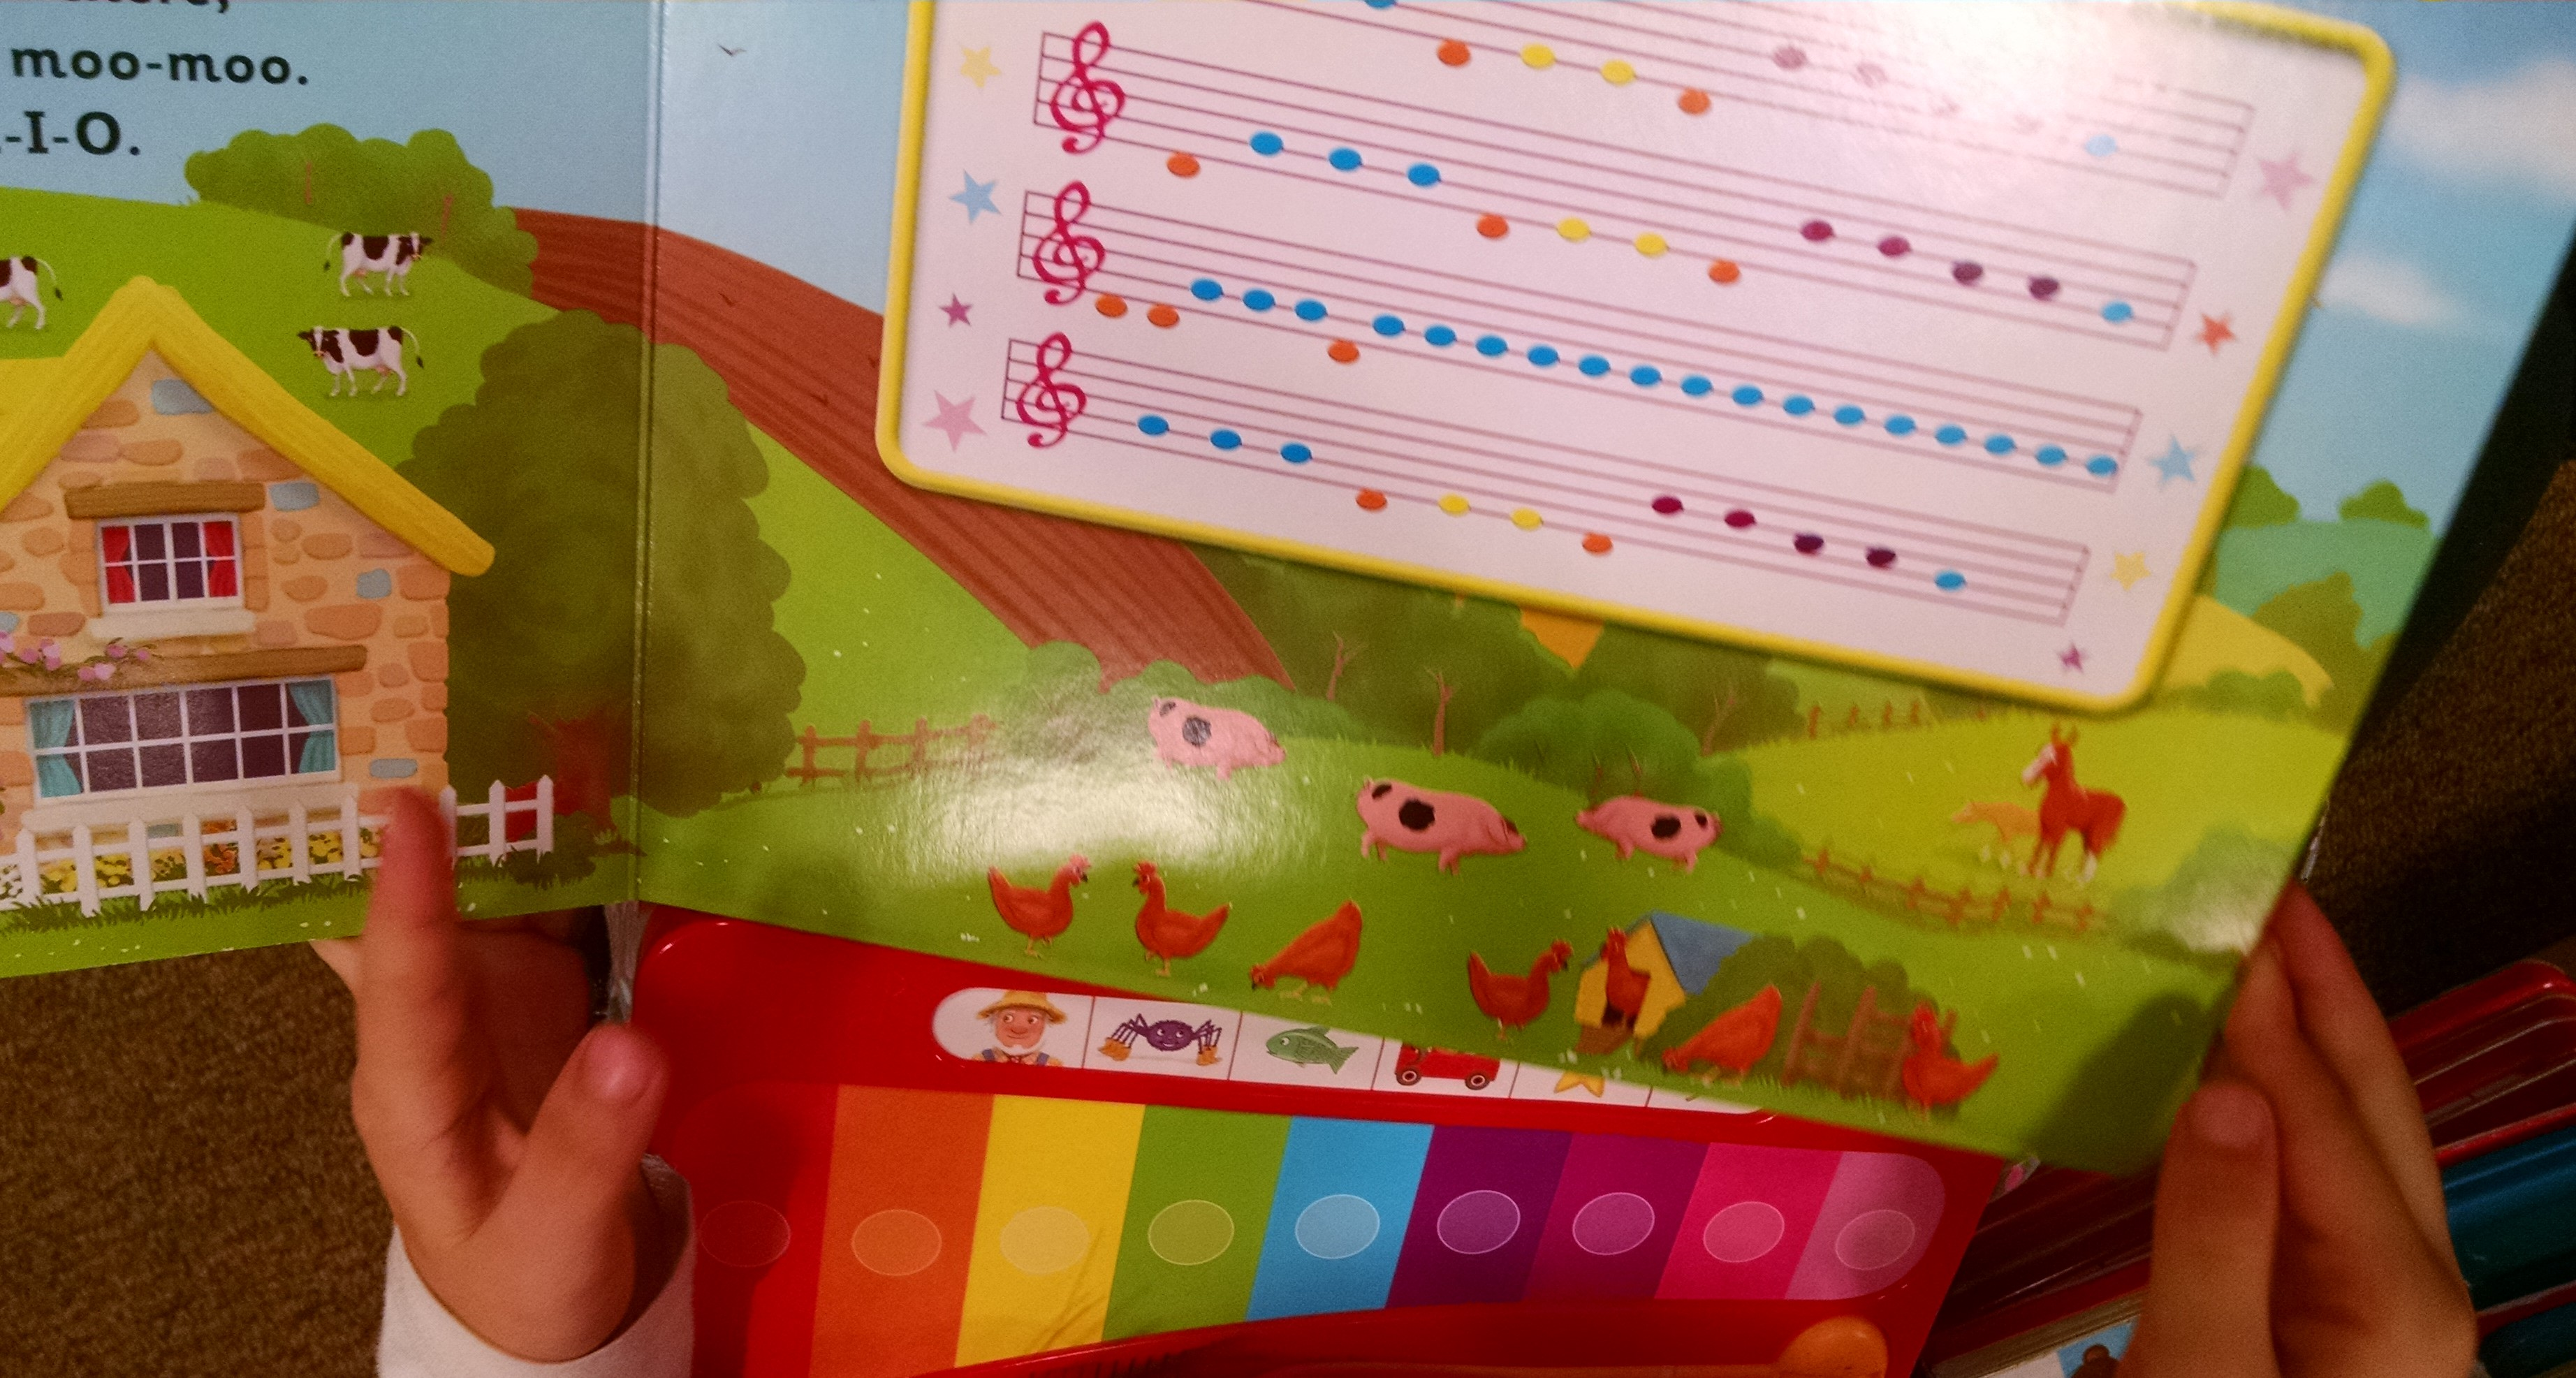 keyboard for childrens book